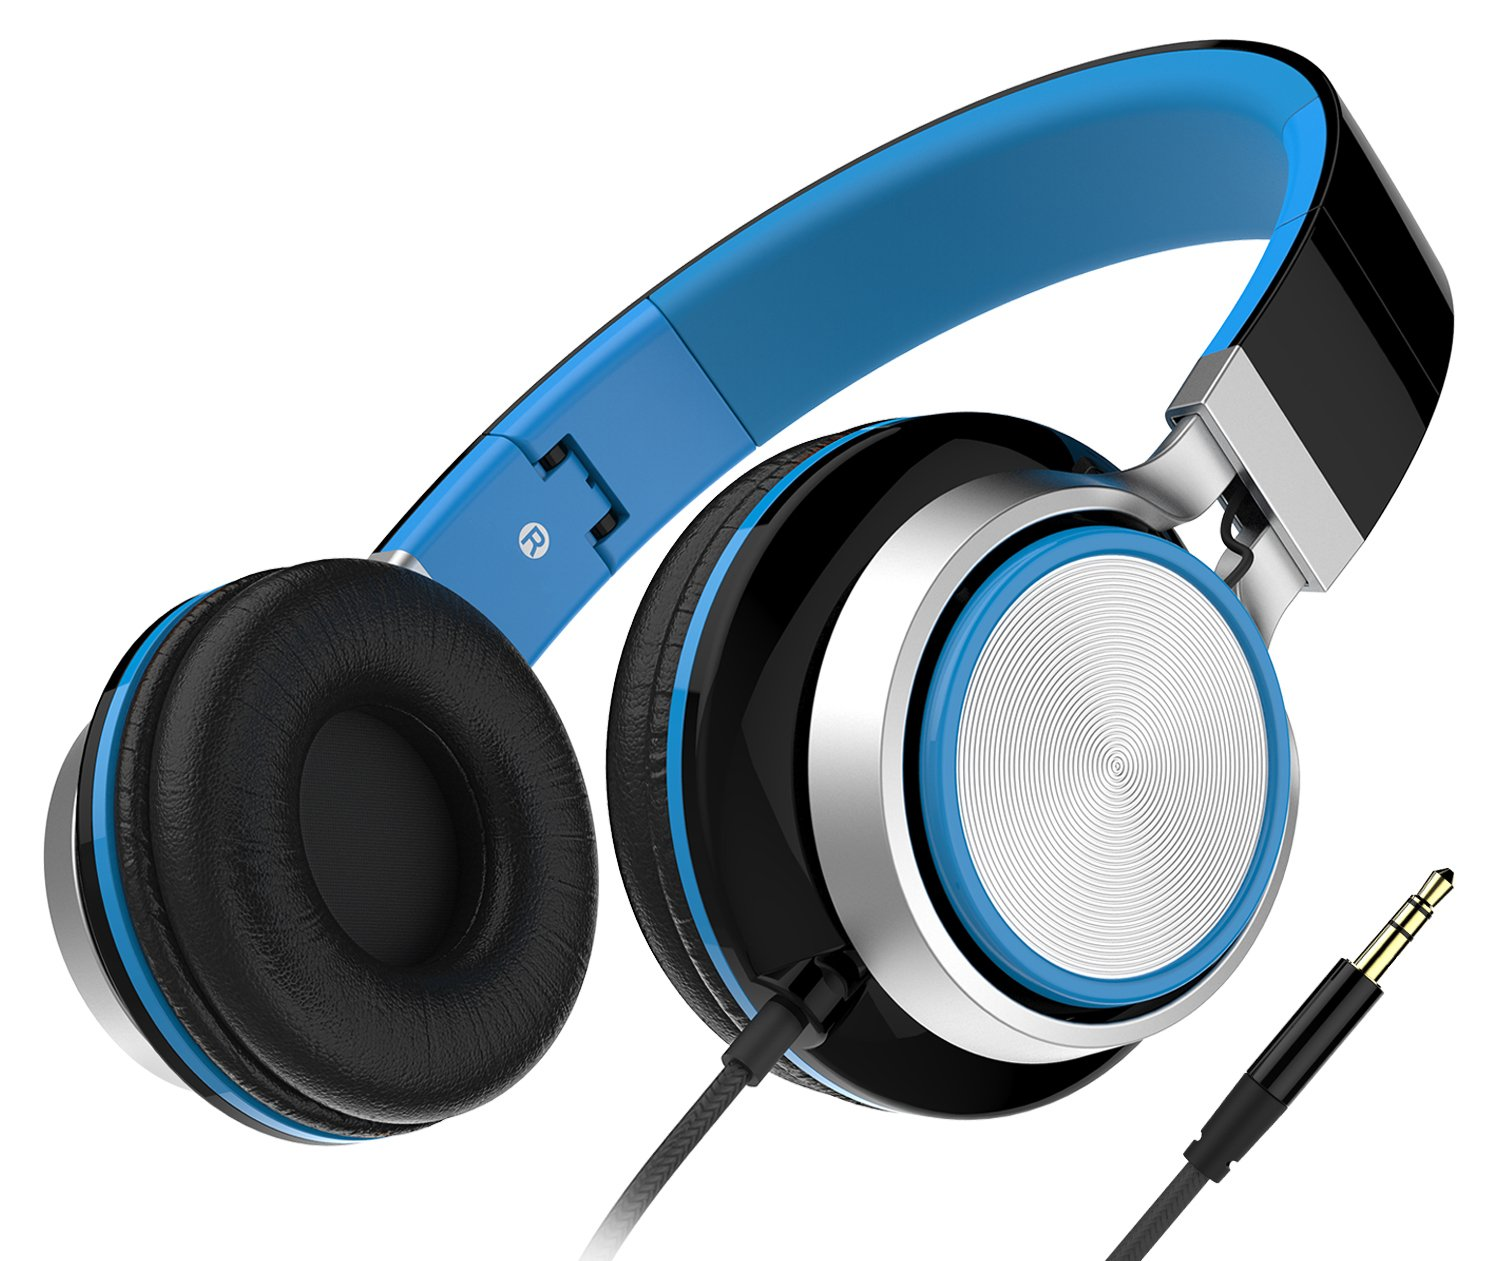 Headphones, Honstek Foldable and Lightweight On-Ear headphone, Stereo Wired Comfortable Headset for iPhone iPad Android Cellphones Computer Tablets MP3/MP4 (Black/Blue) by Honstek